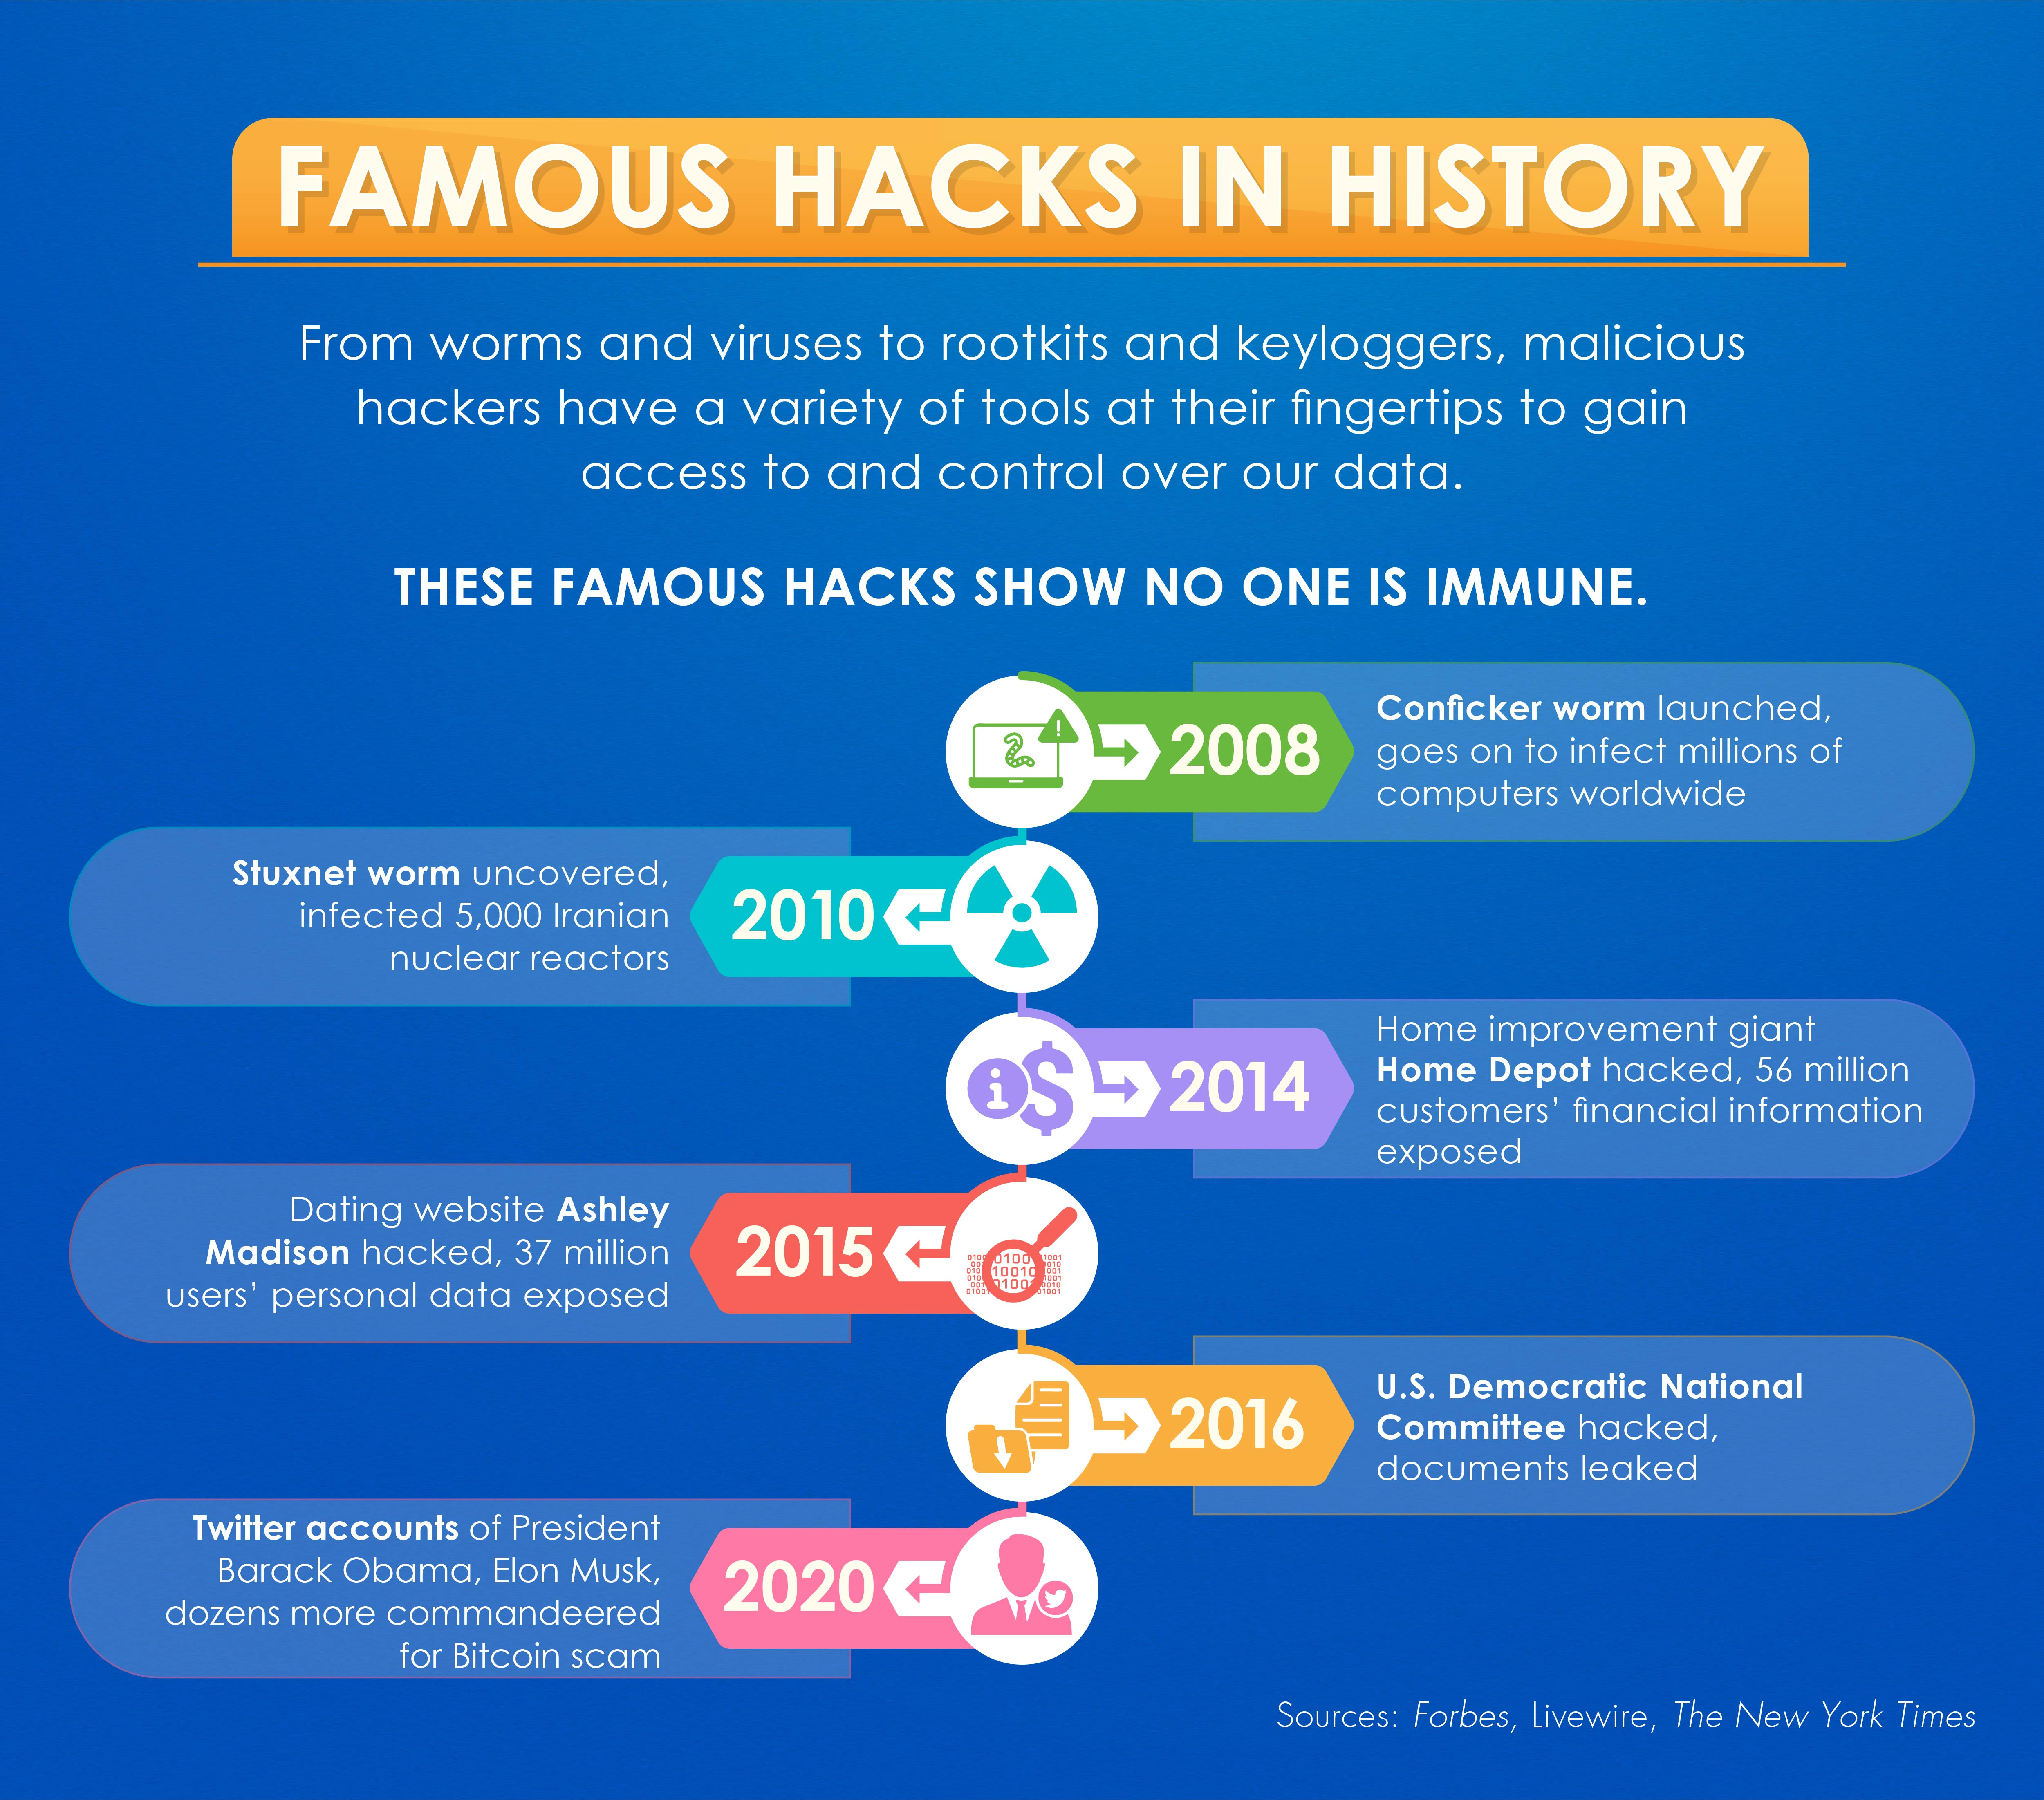 A list of six famous hacks, from 2008 to 2020.